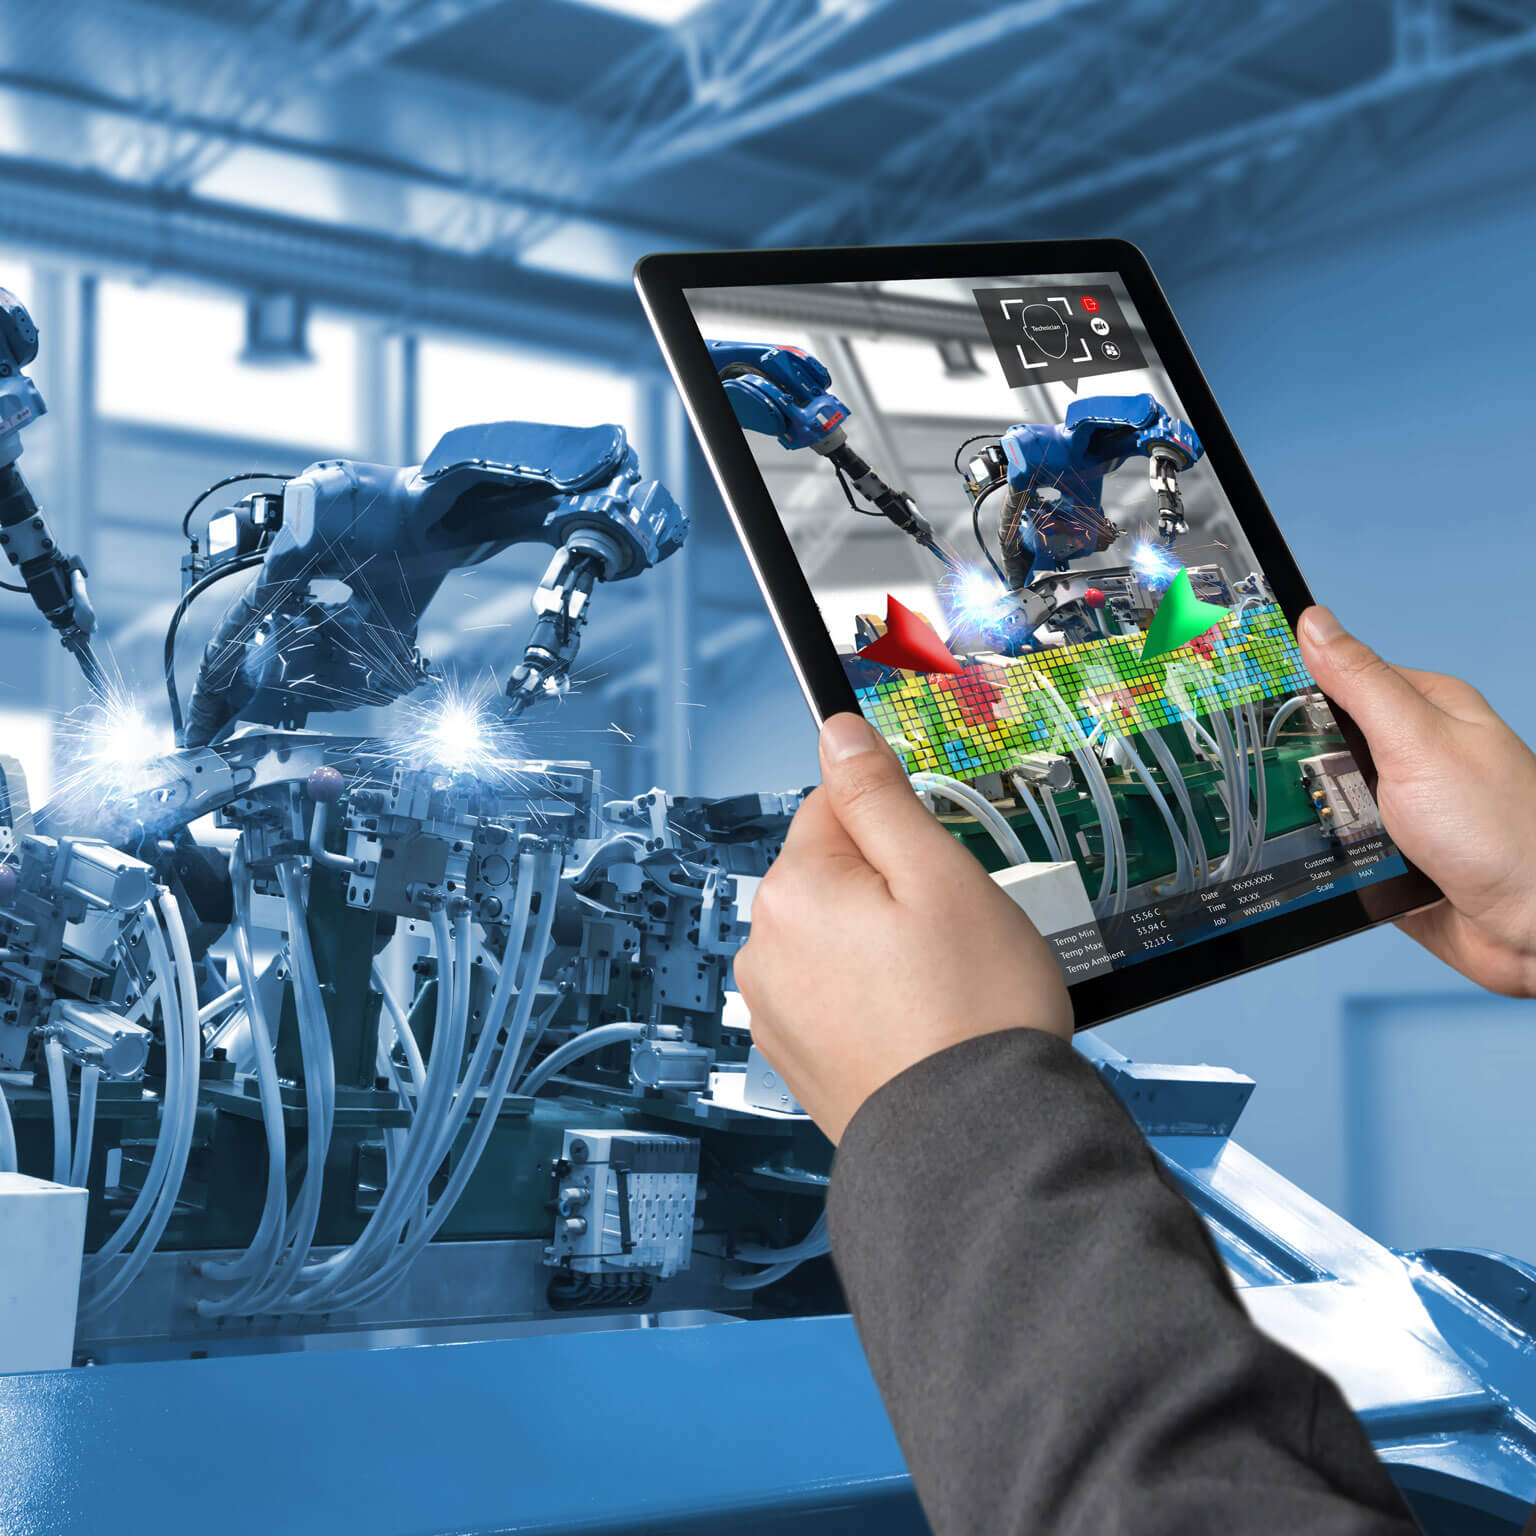 digital-manufacturing-indoostry-aggity